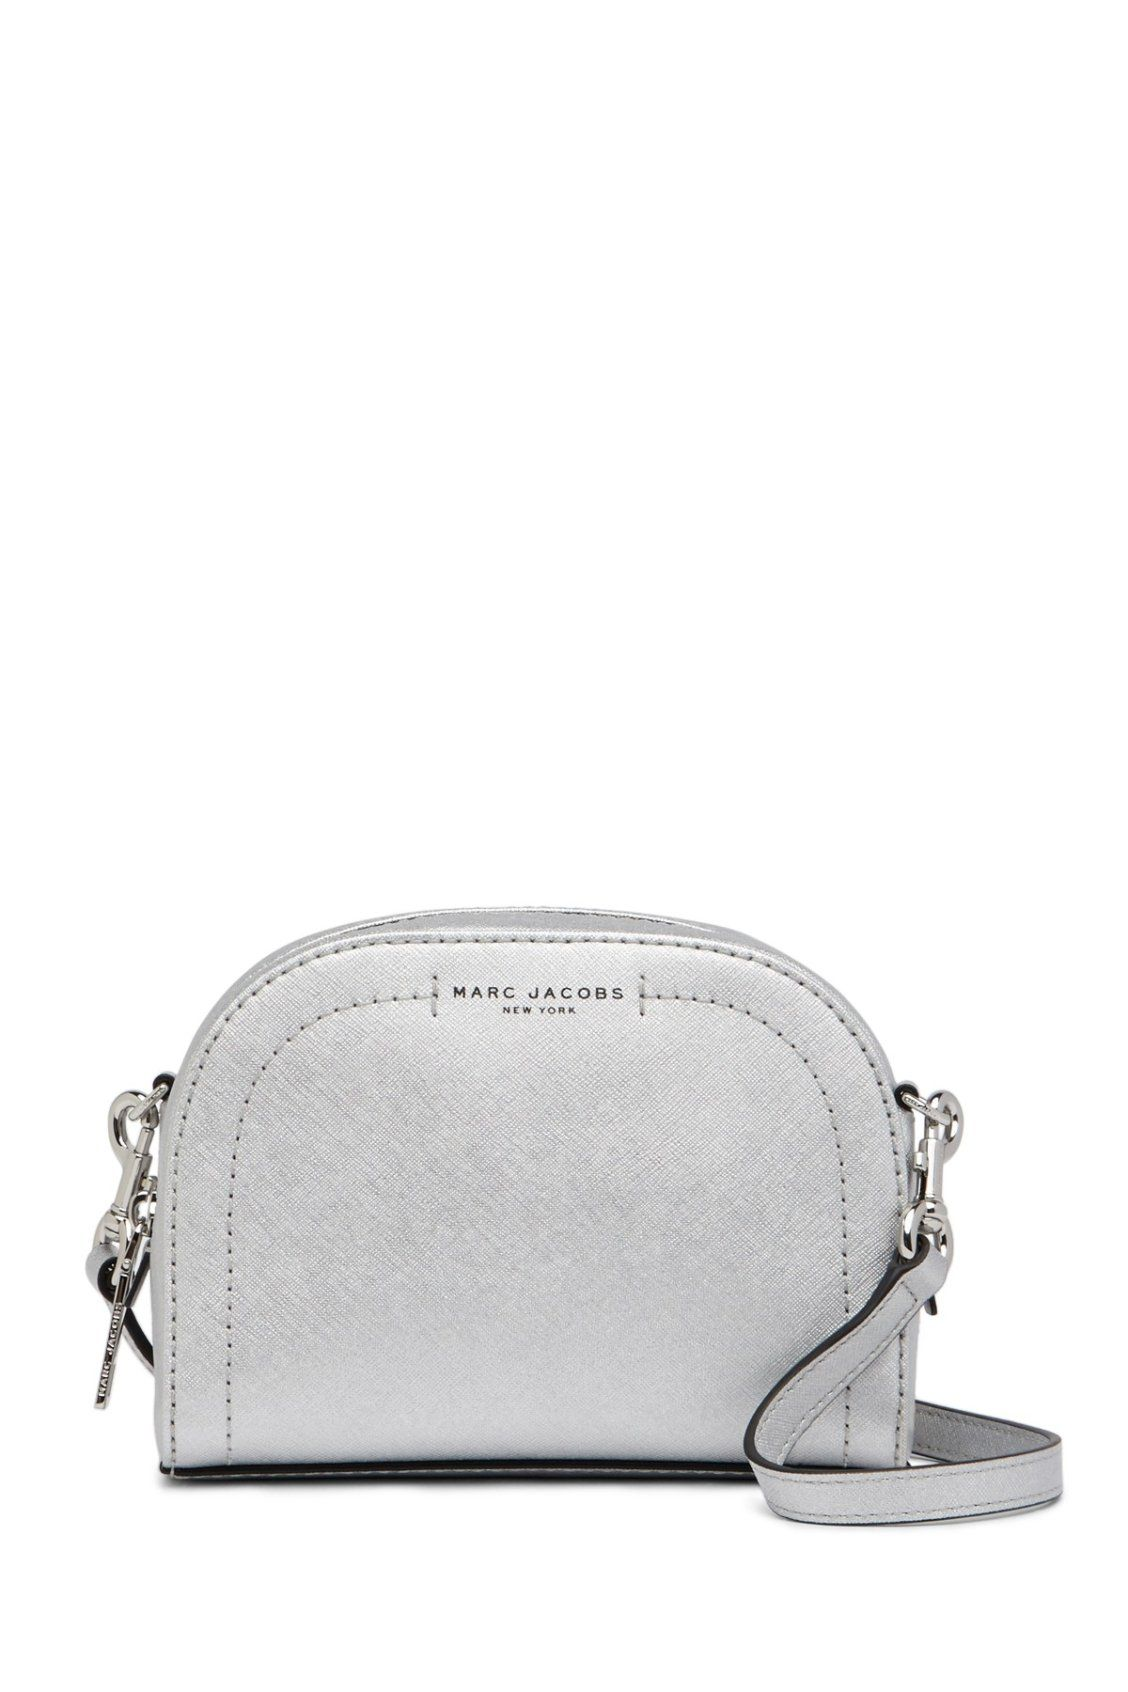 d37d4f6a5f152 Need this Marc Jacobs Playback Metallic Leather Crossbody Bag